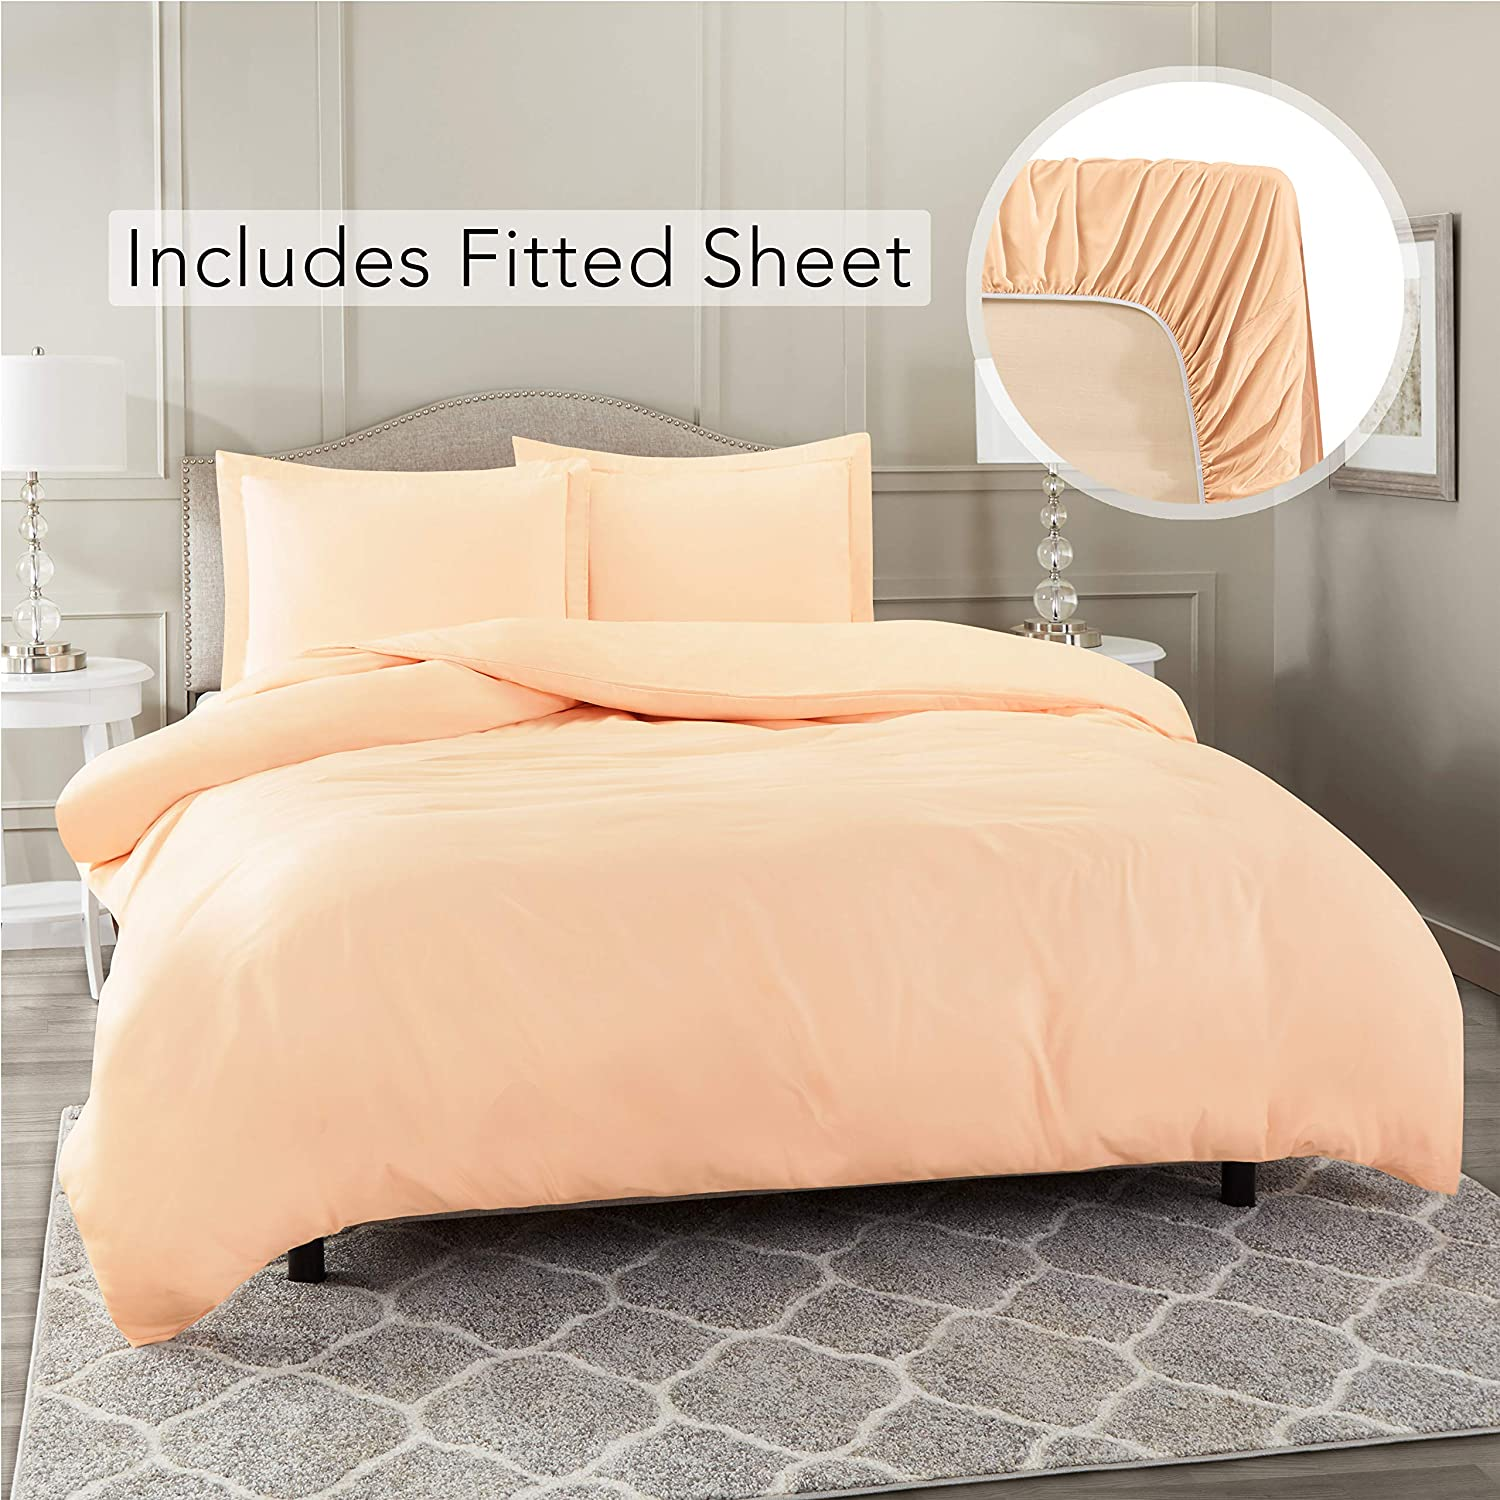 Nestl Bedding Duvet Cover with Fitted Sheet 3 Piece Set - Soft Double Brushed Microfiber Hotel Collection - Comforter Cover with Button Closure, Fitted Sheet, 1 Pillow Sham, Twin XL - Peach